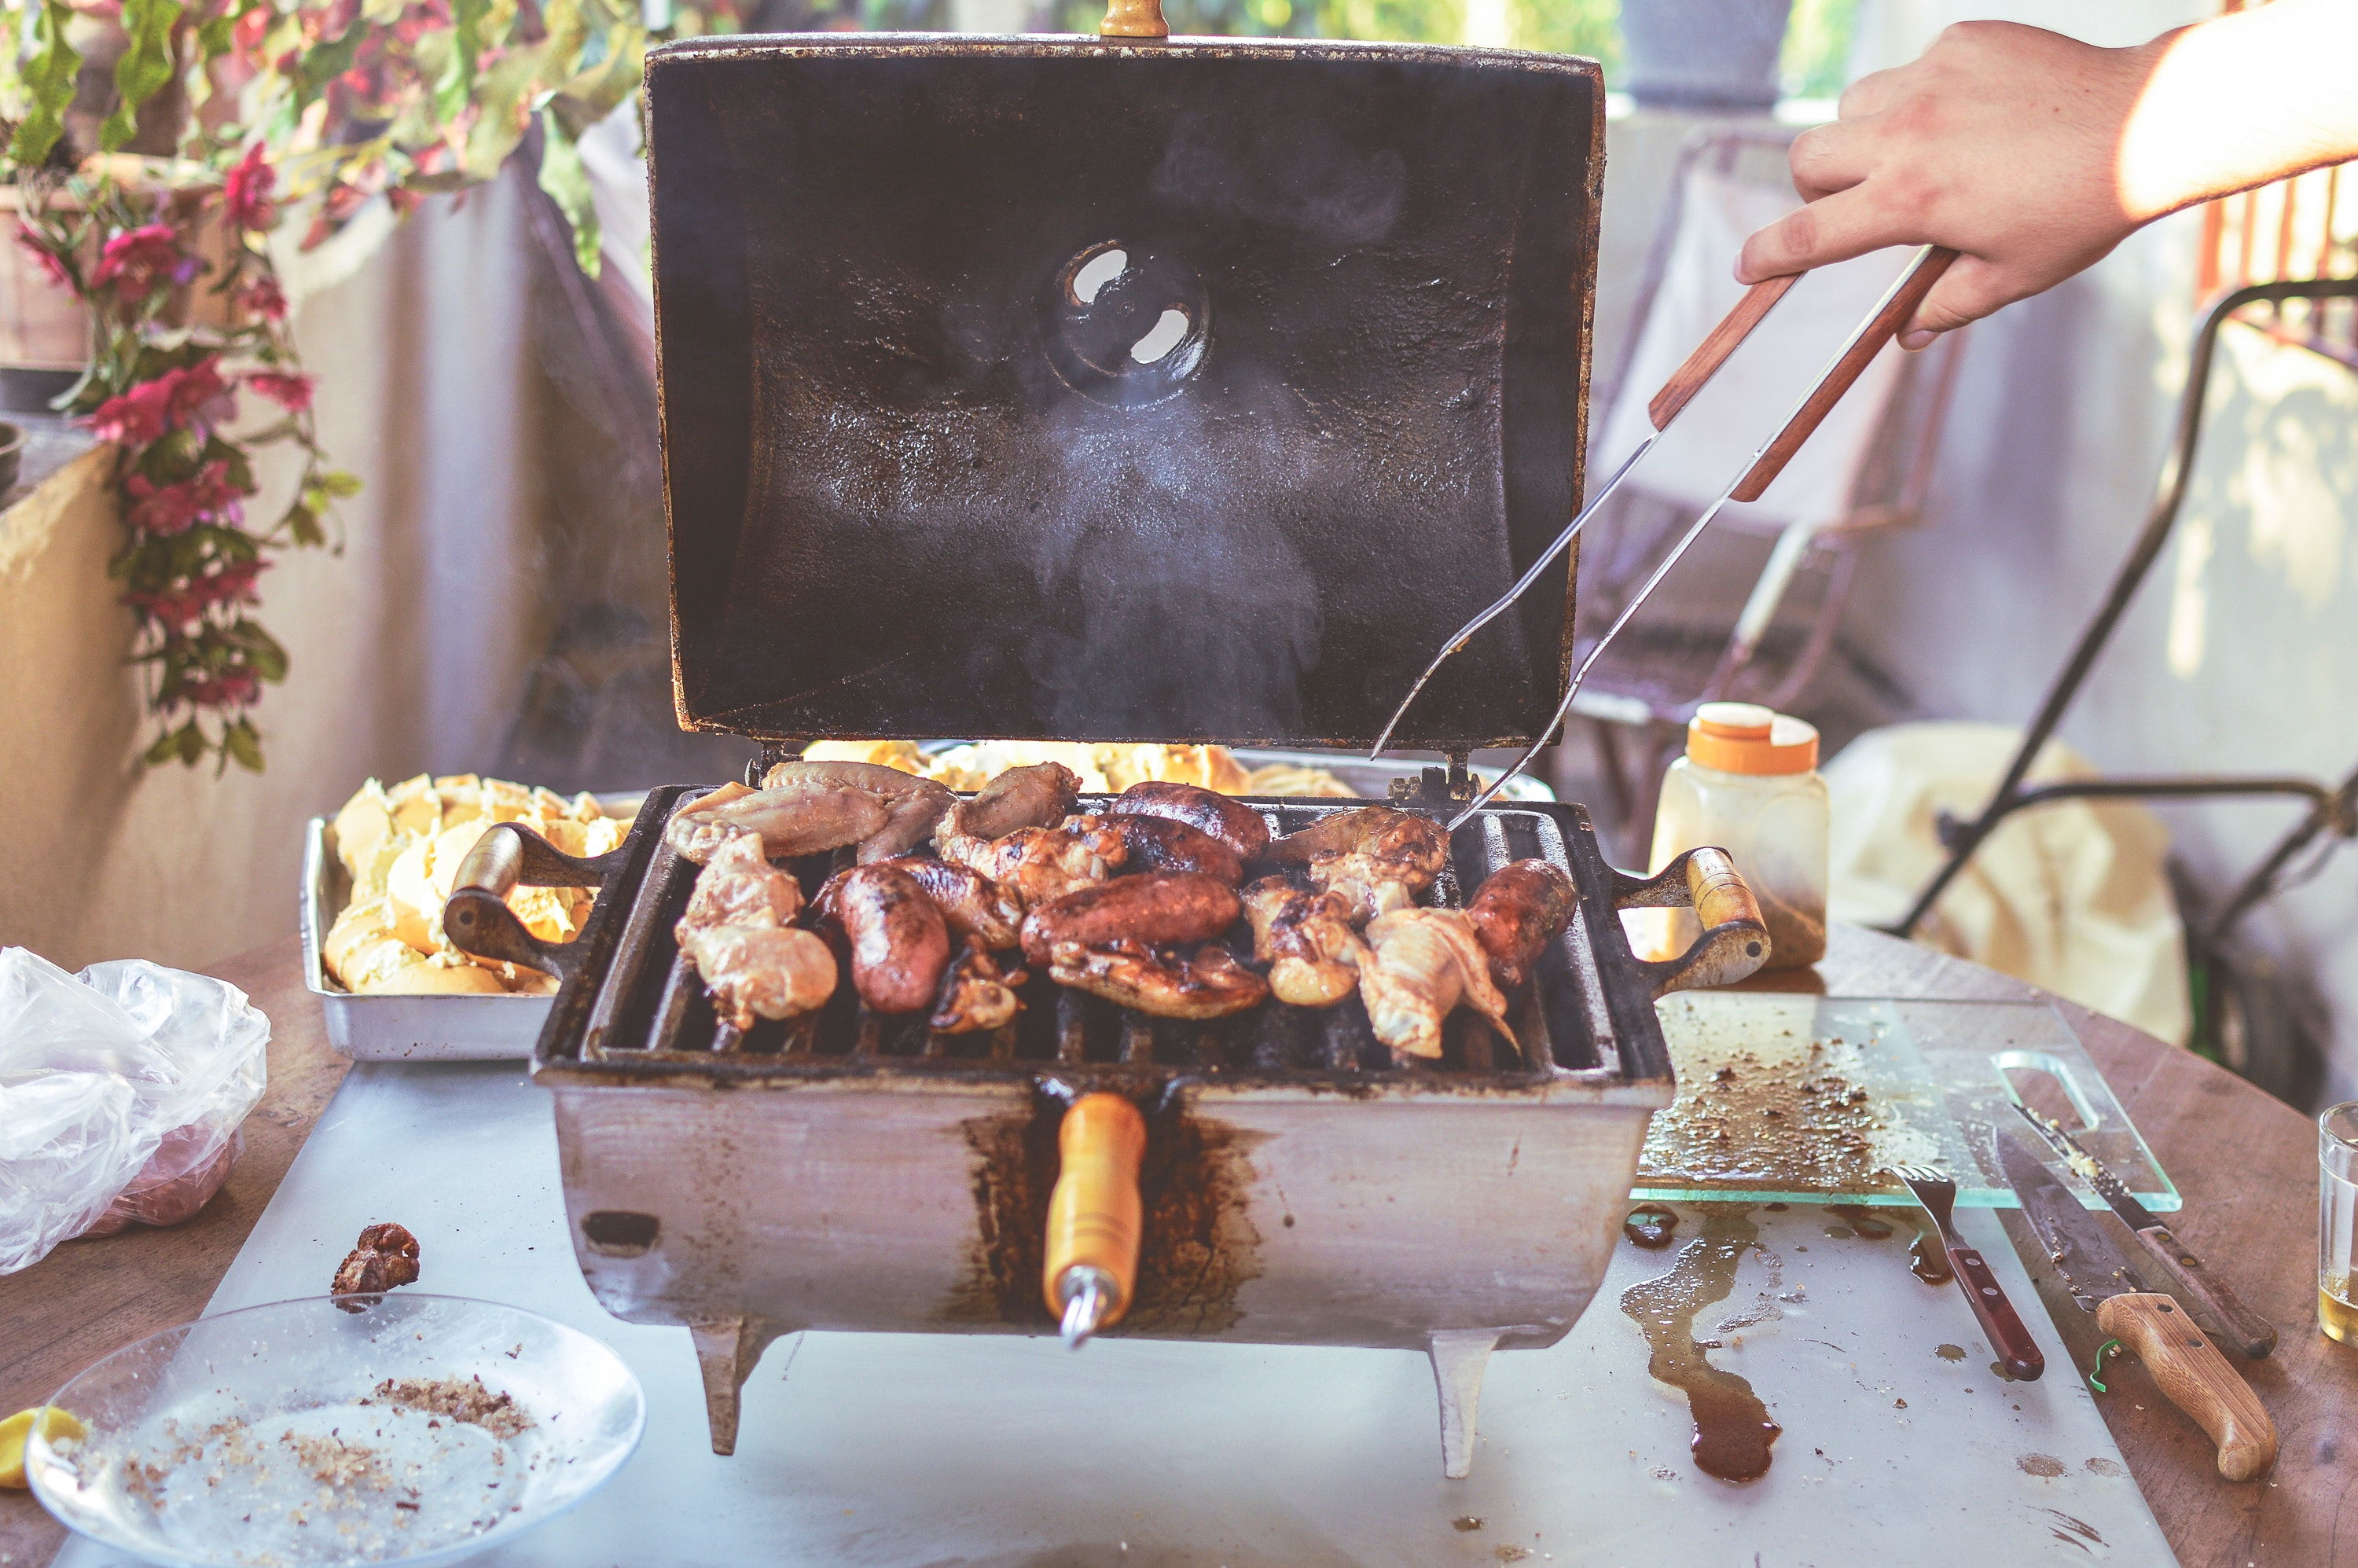 Grilled Meat, Meat, Handmade, Lunch, Raw, HQ Photo